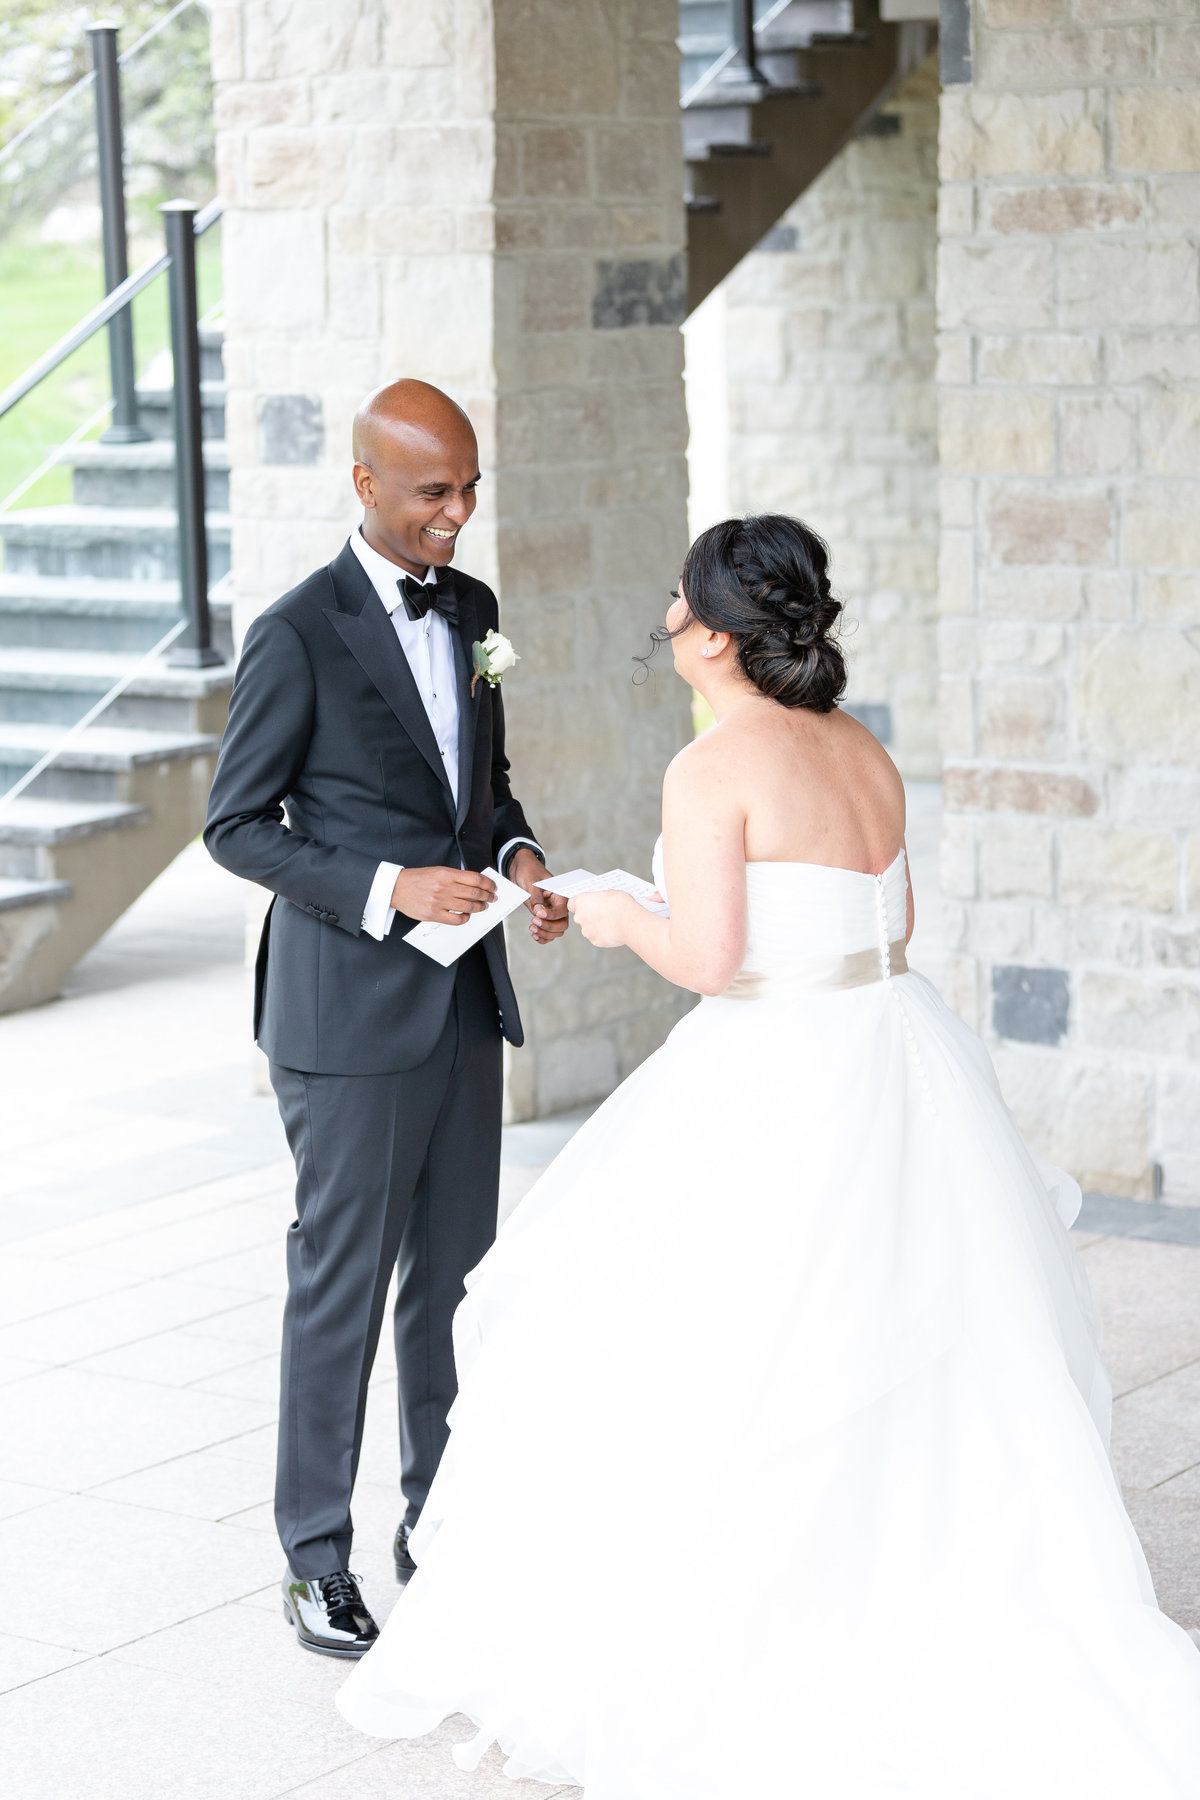 arlington-estae-Vicky-and-Emmanuel-Wedding-First-Look-Chris-and-Micaela-Photography-103